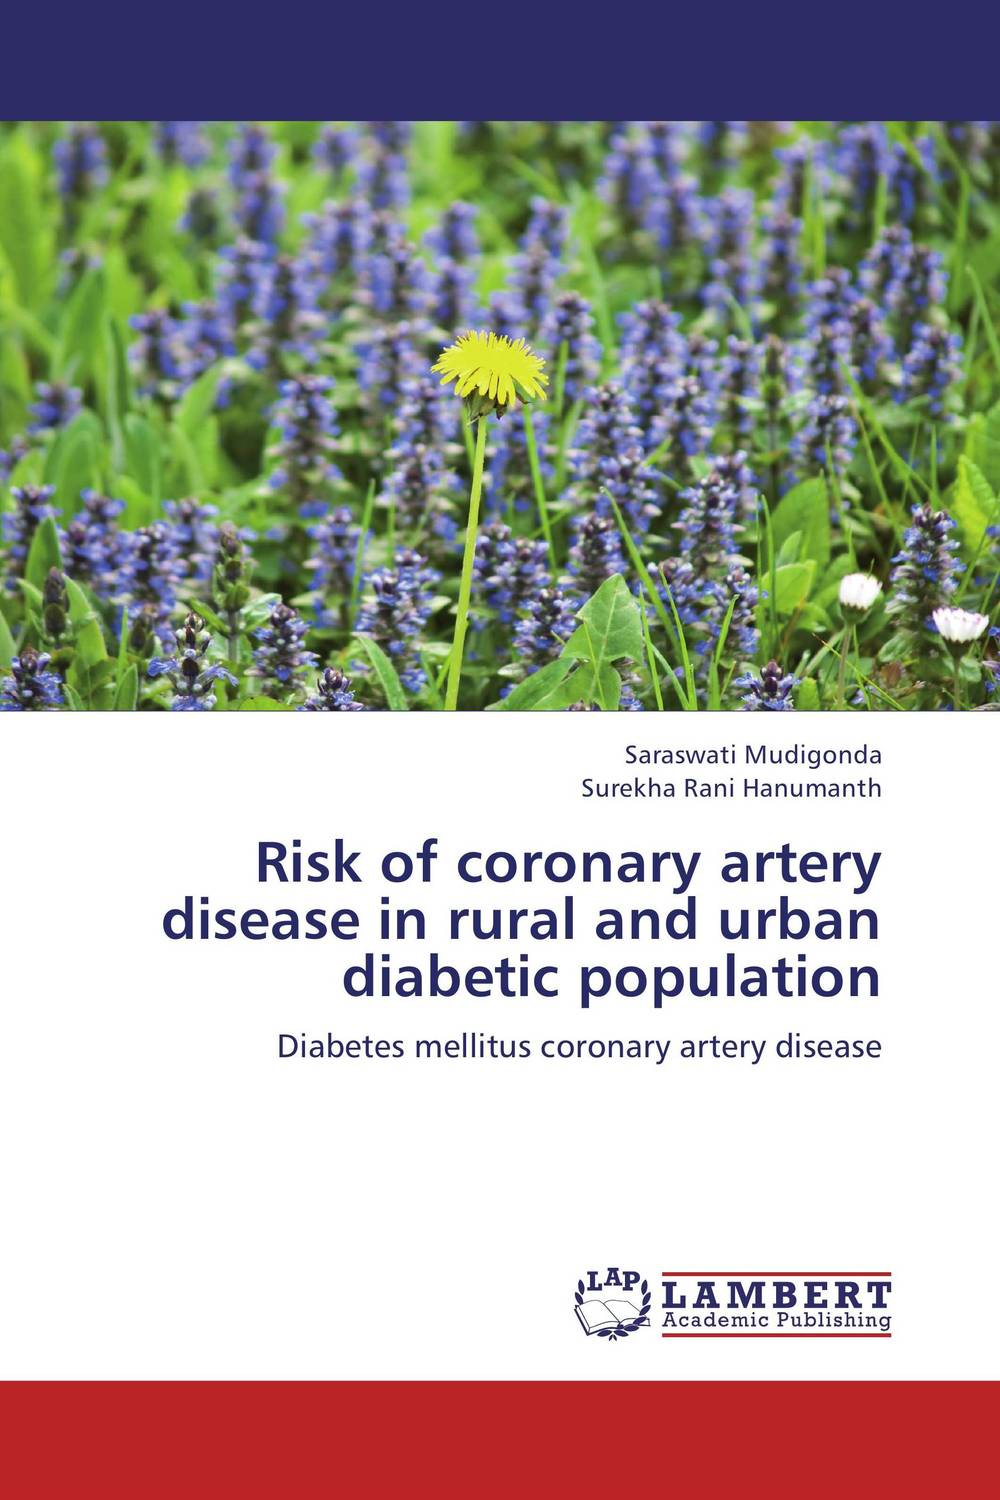 Risk of coronary artery disease in rural and urban diabetic population sharad leve rakesh verma and rakesh kumar dixit role of irbesartan and curcumin in type 2 diabetes mellitus